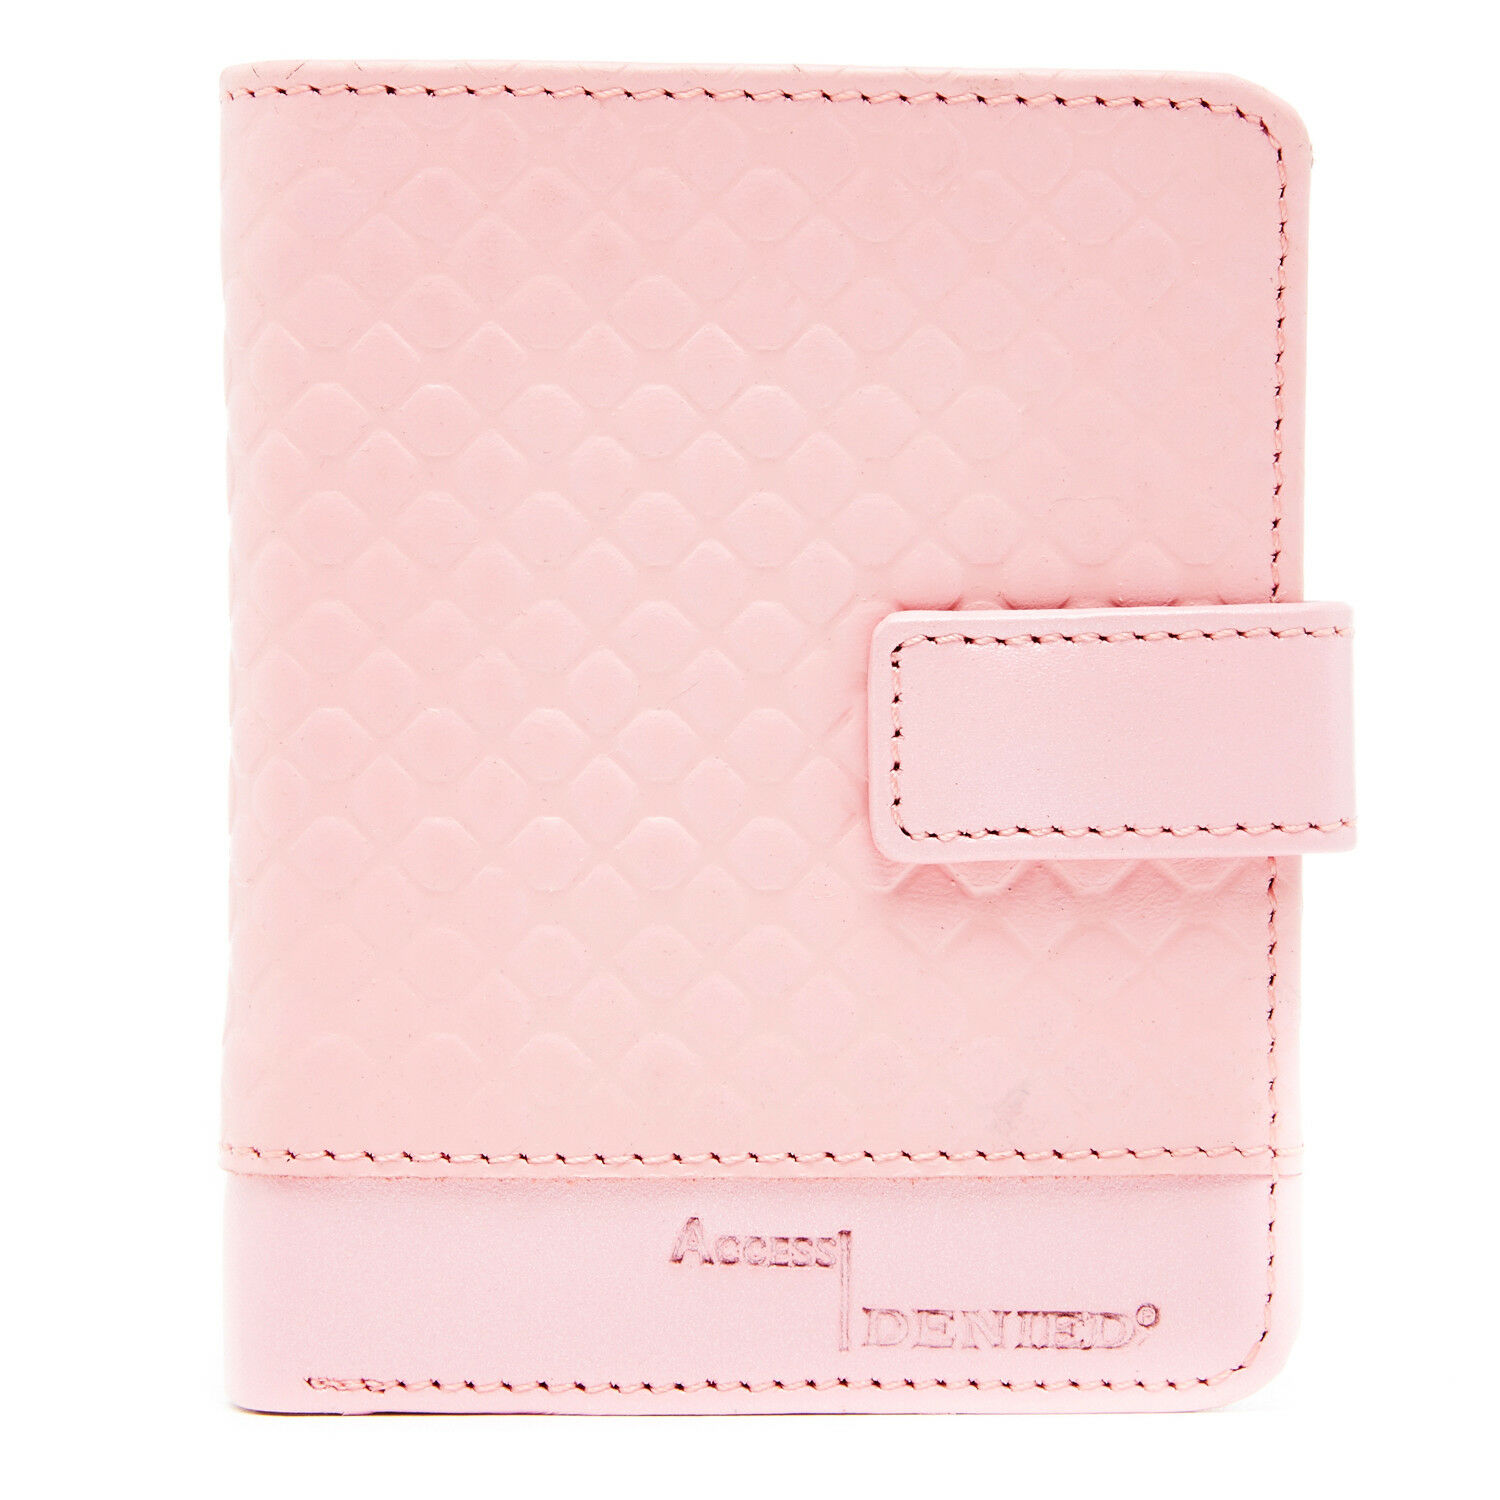 Leather Slim Wallet For Women Ladies Organizer With Flip-Up